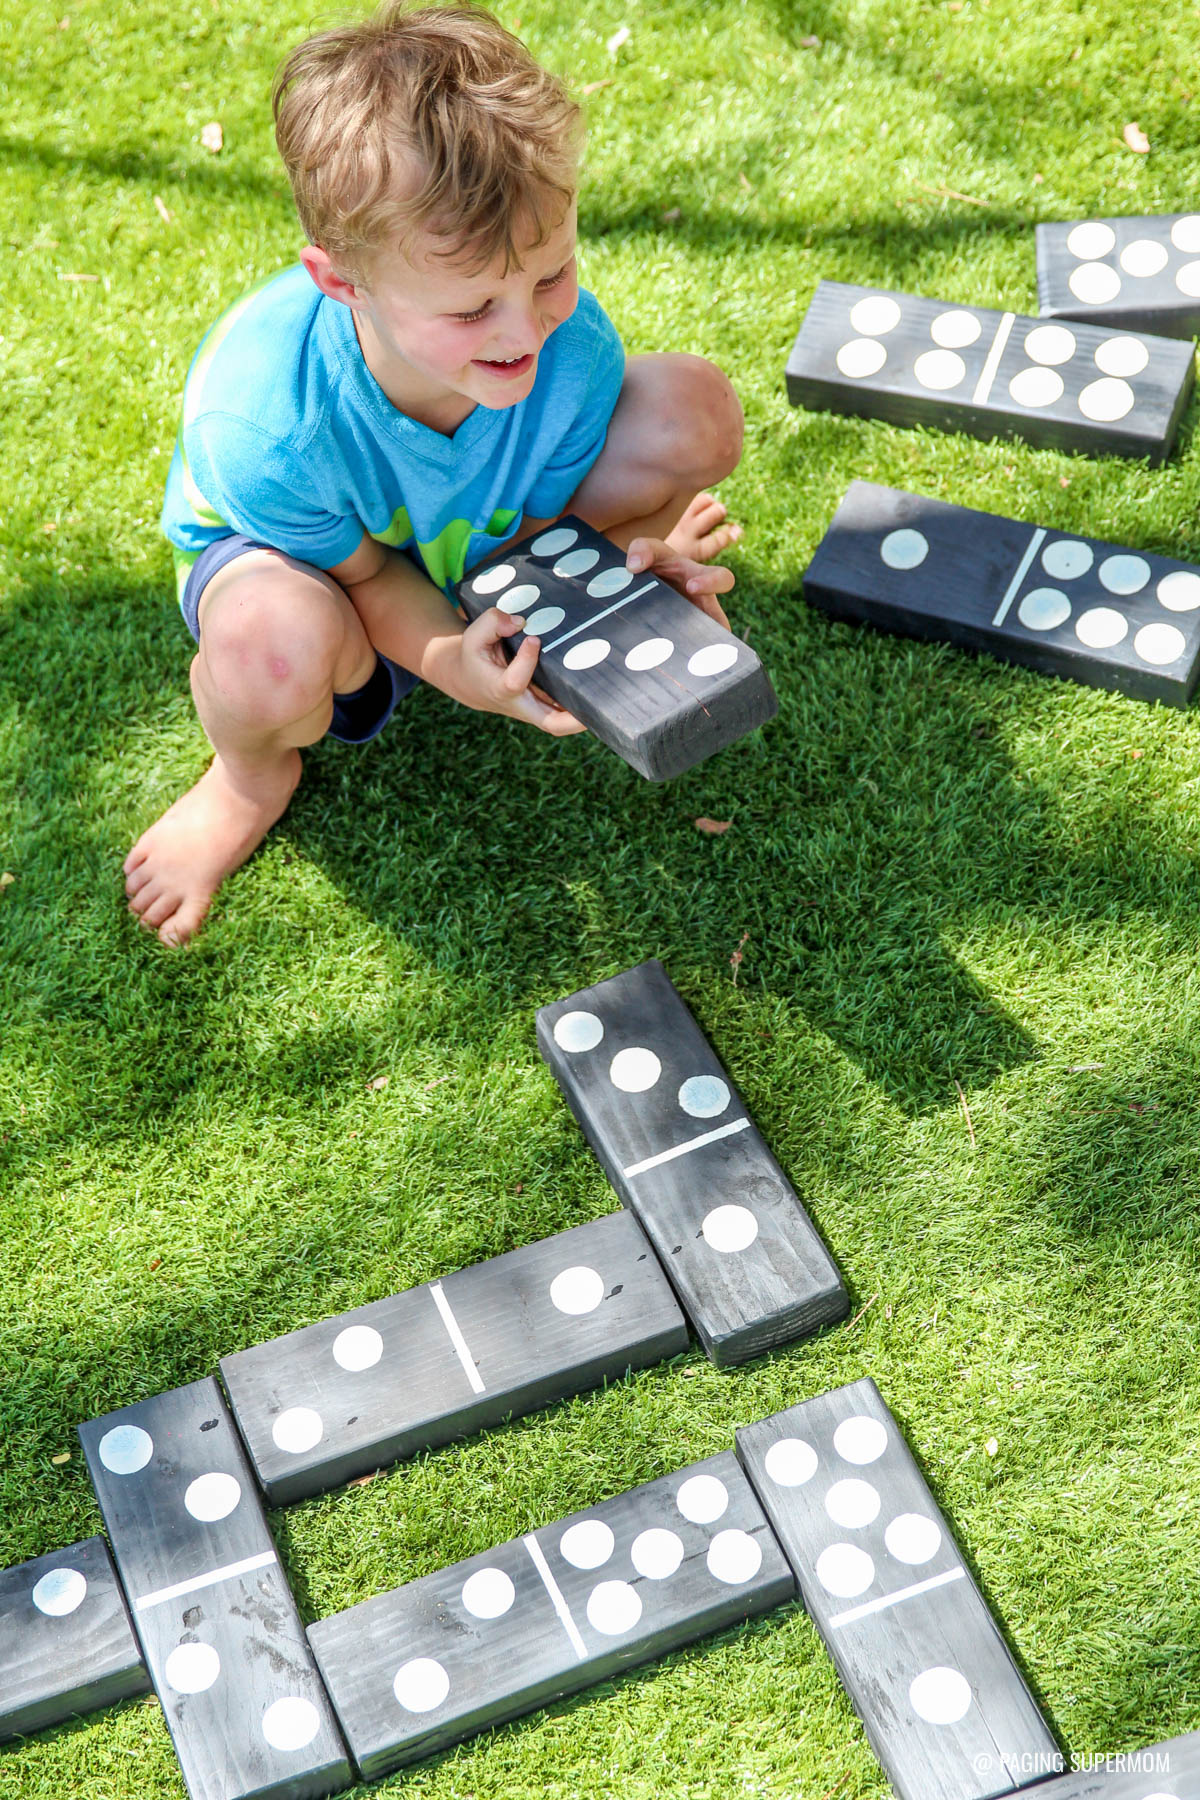 Backyard games how to make yard dominoes ring toss giant jenga giant backyard dominoes diy backyard games plans from homedepot via pagingsupermom solutioingenieria Image collections